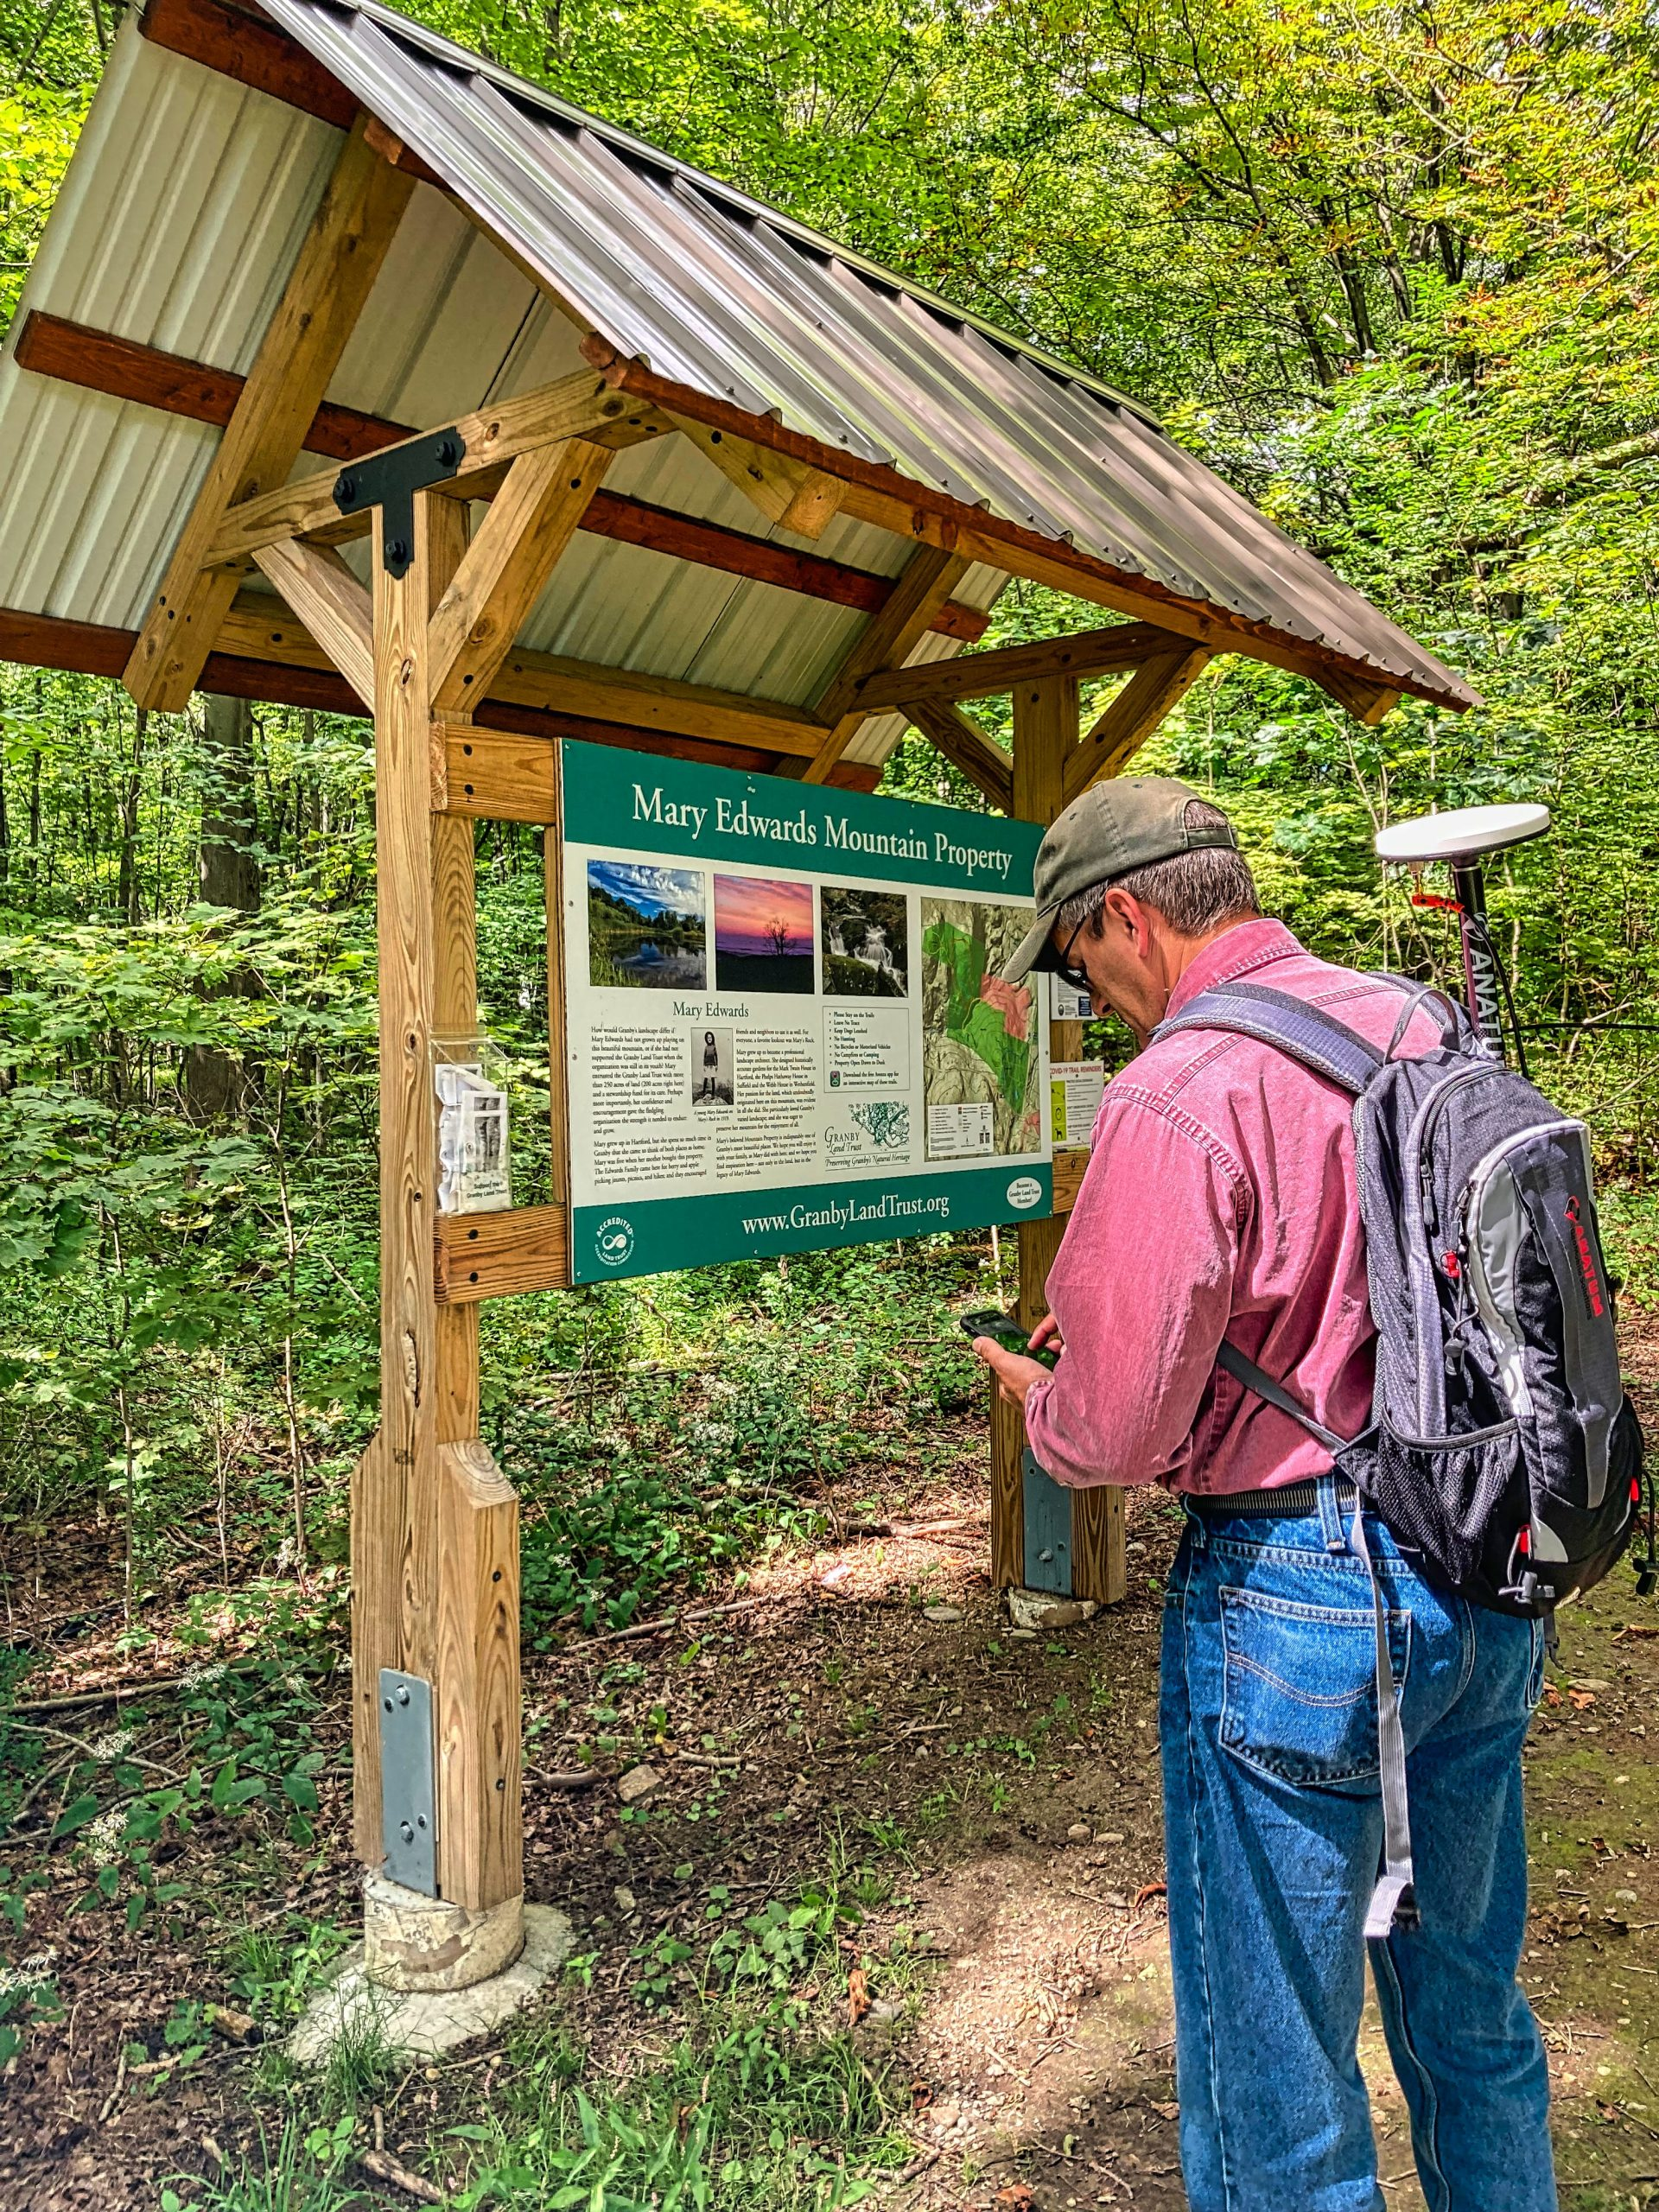 Steve Perry collects high accuracy GNSS GPS data in front of a trail, he is in the field for a land trust conservatorory using Esri ArcGIS Field Maps